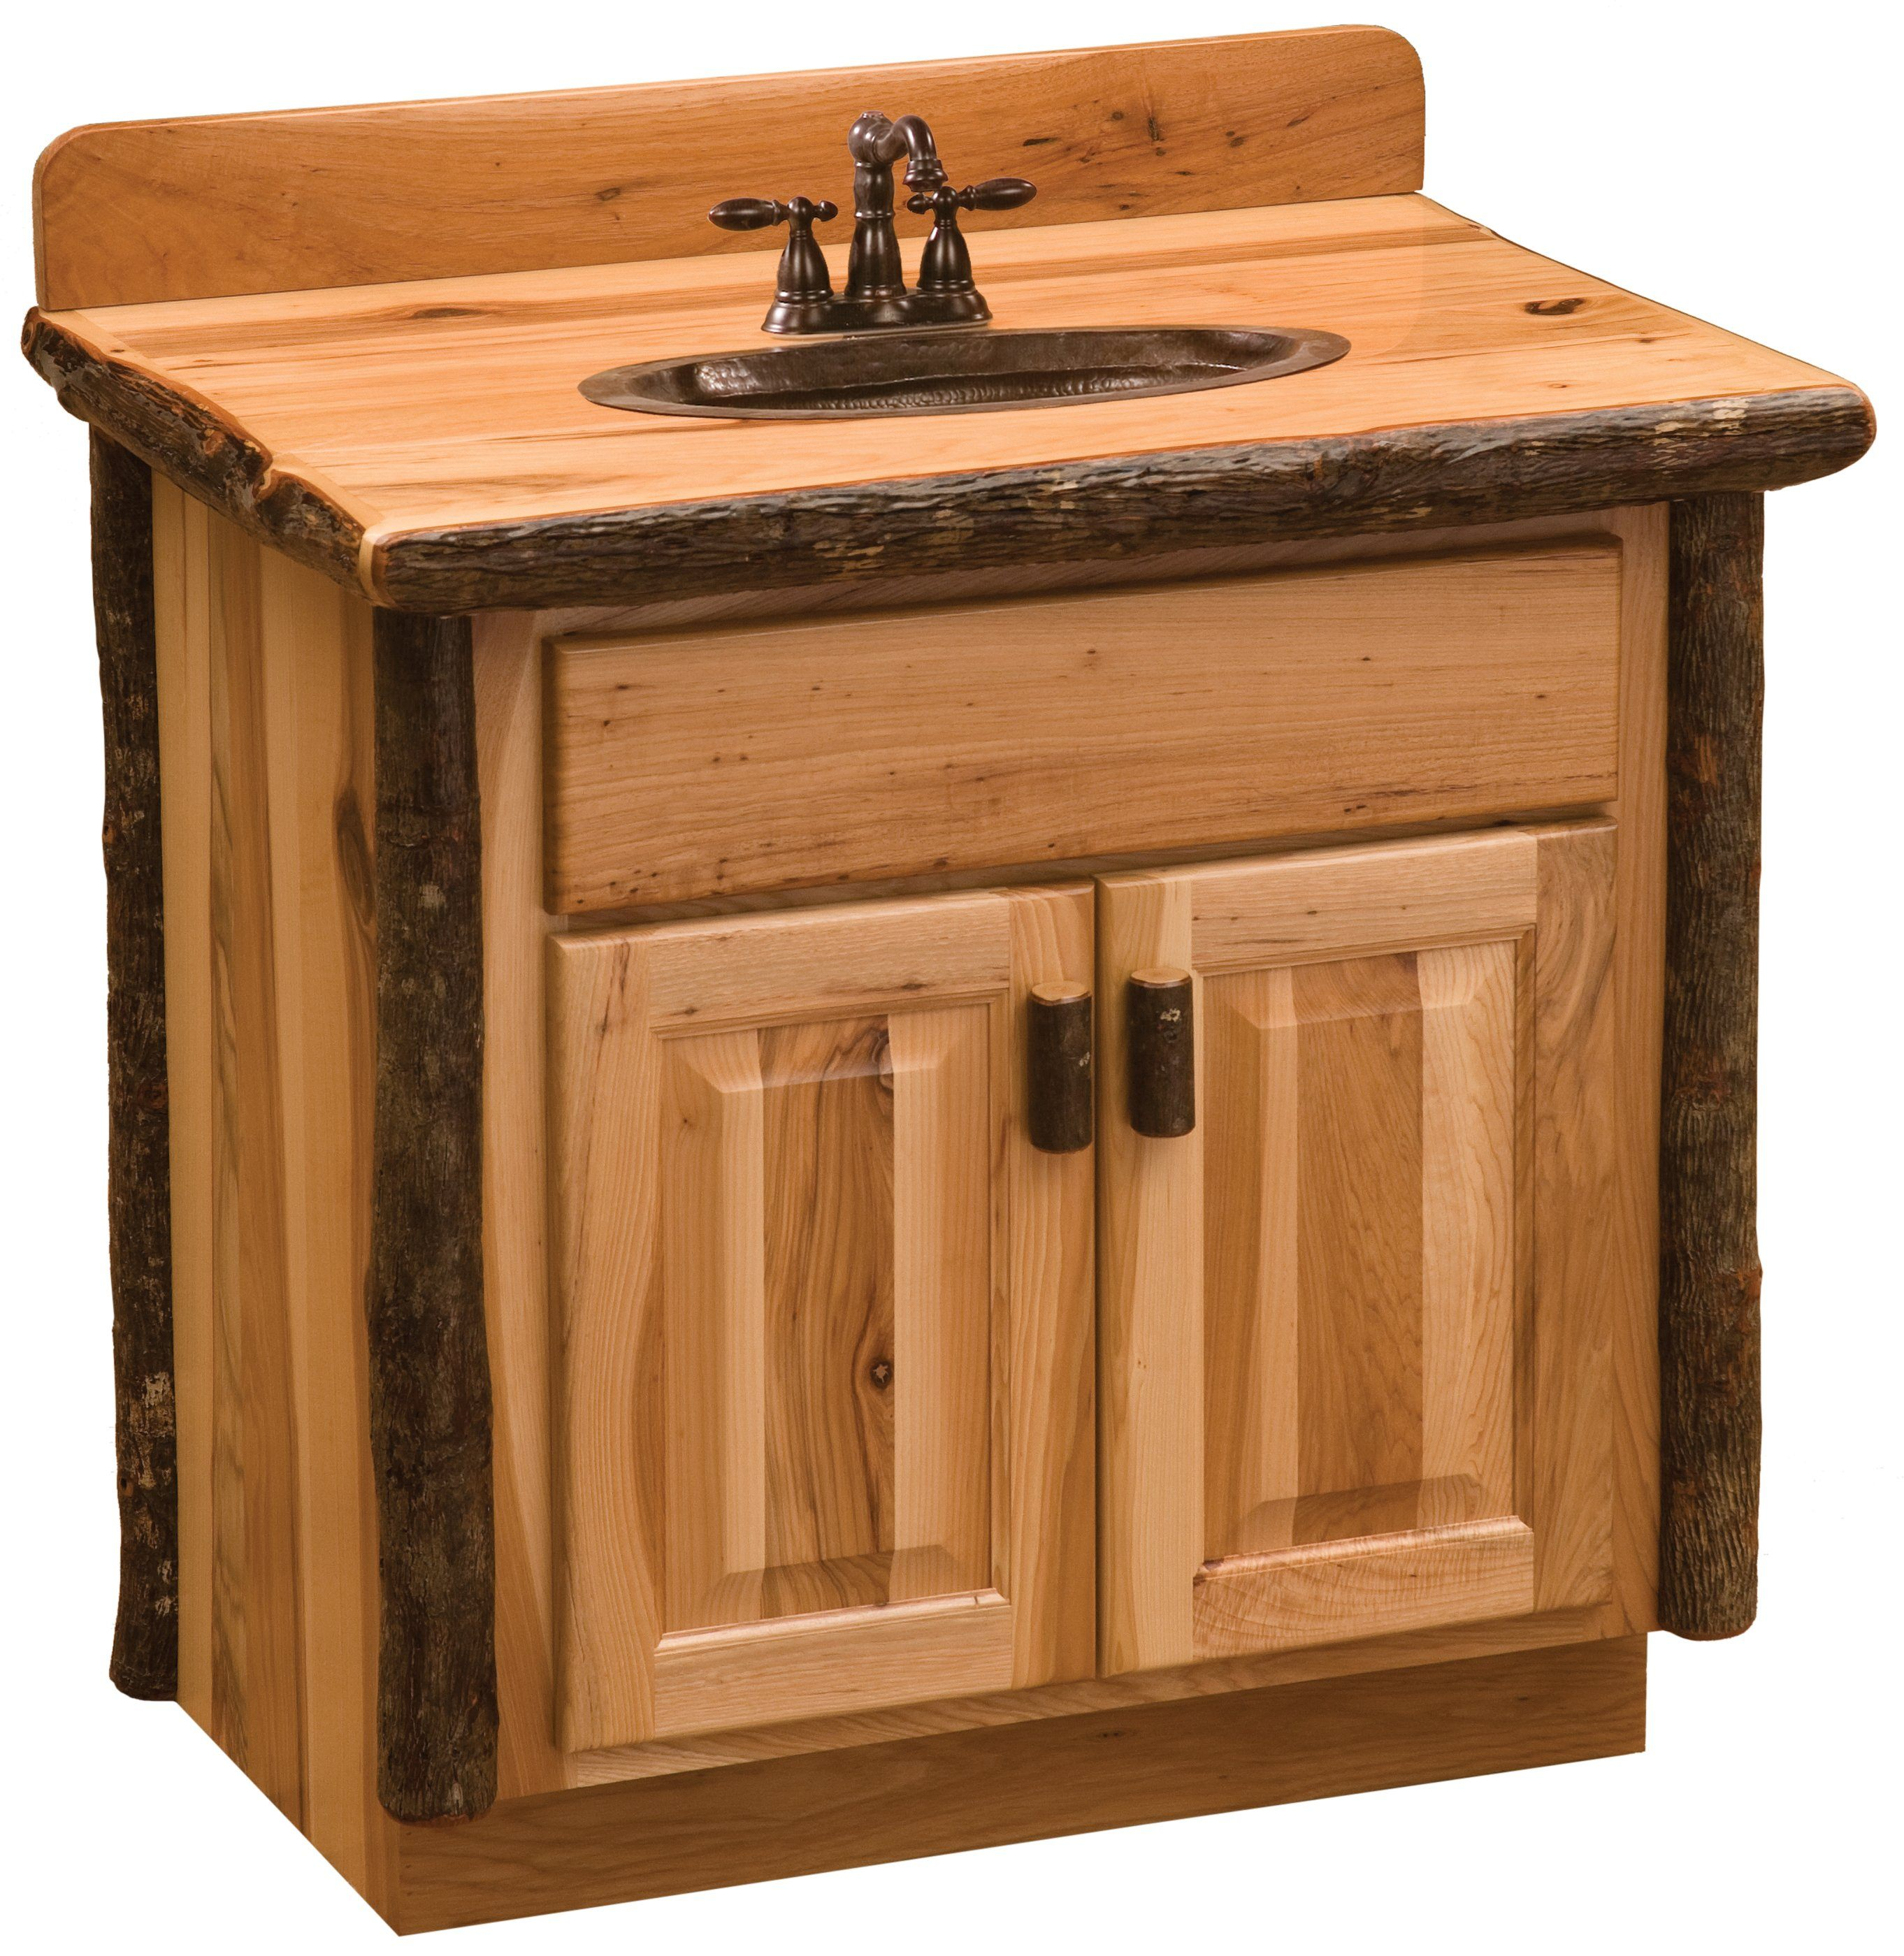 Hickory Log Vanity 30 36 42 48 Inch Without Top Sink Center